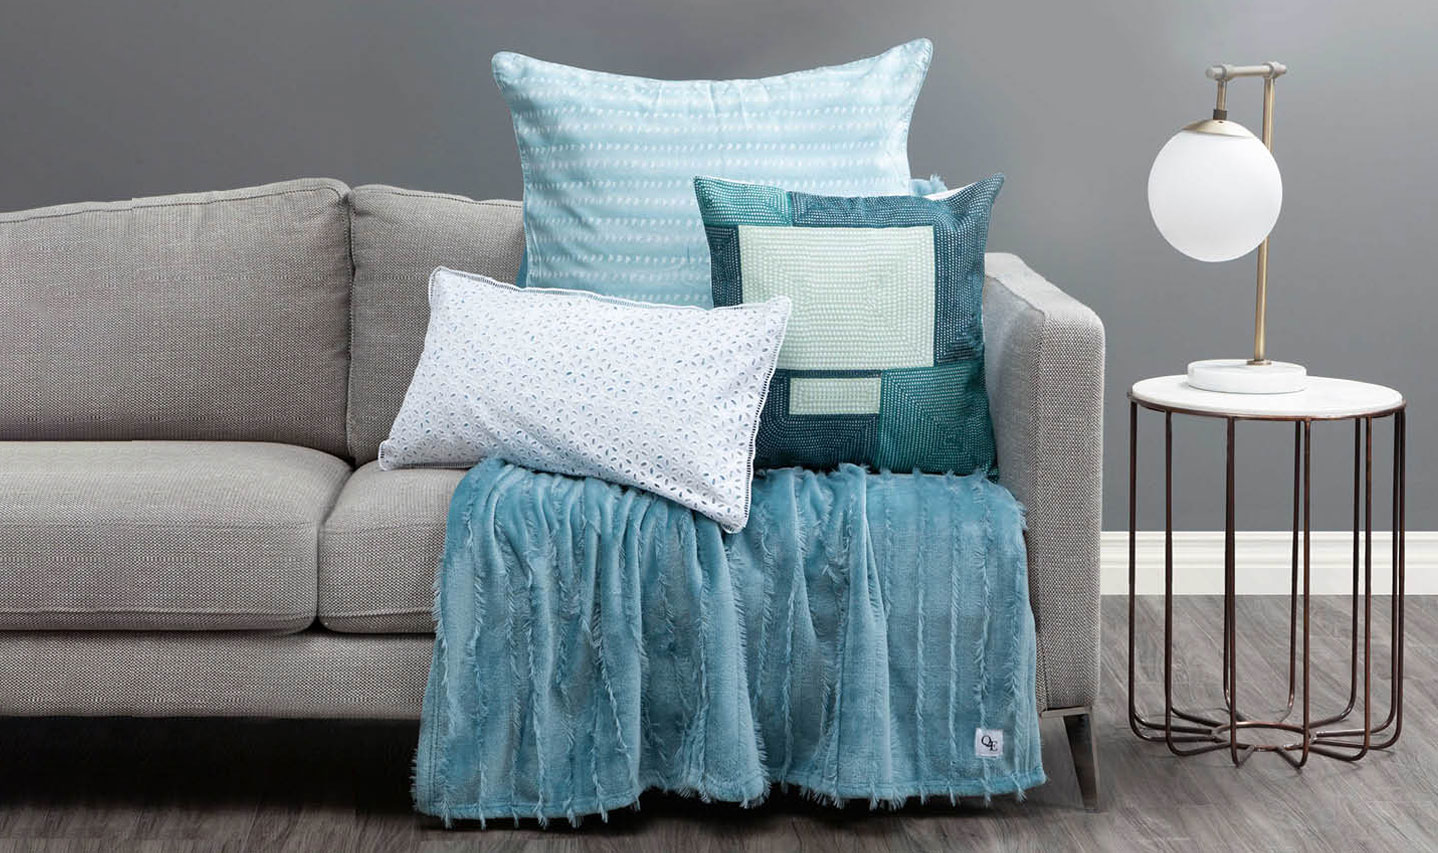 Teal Toned Mix of Decor Accessories